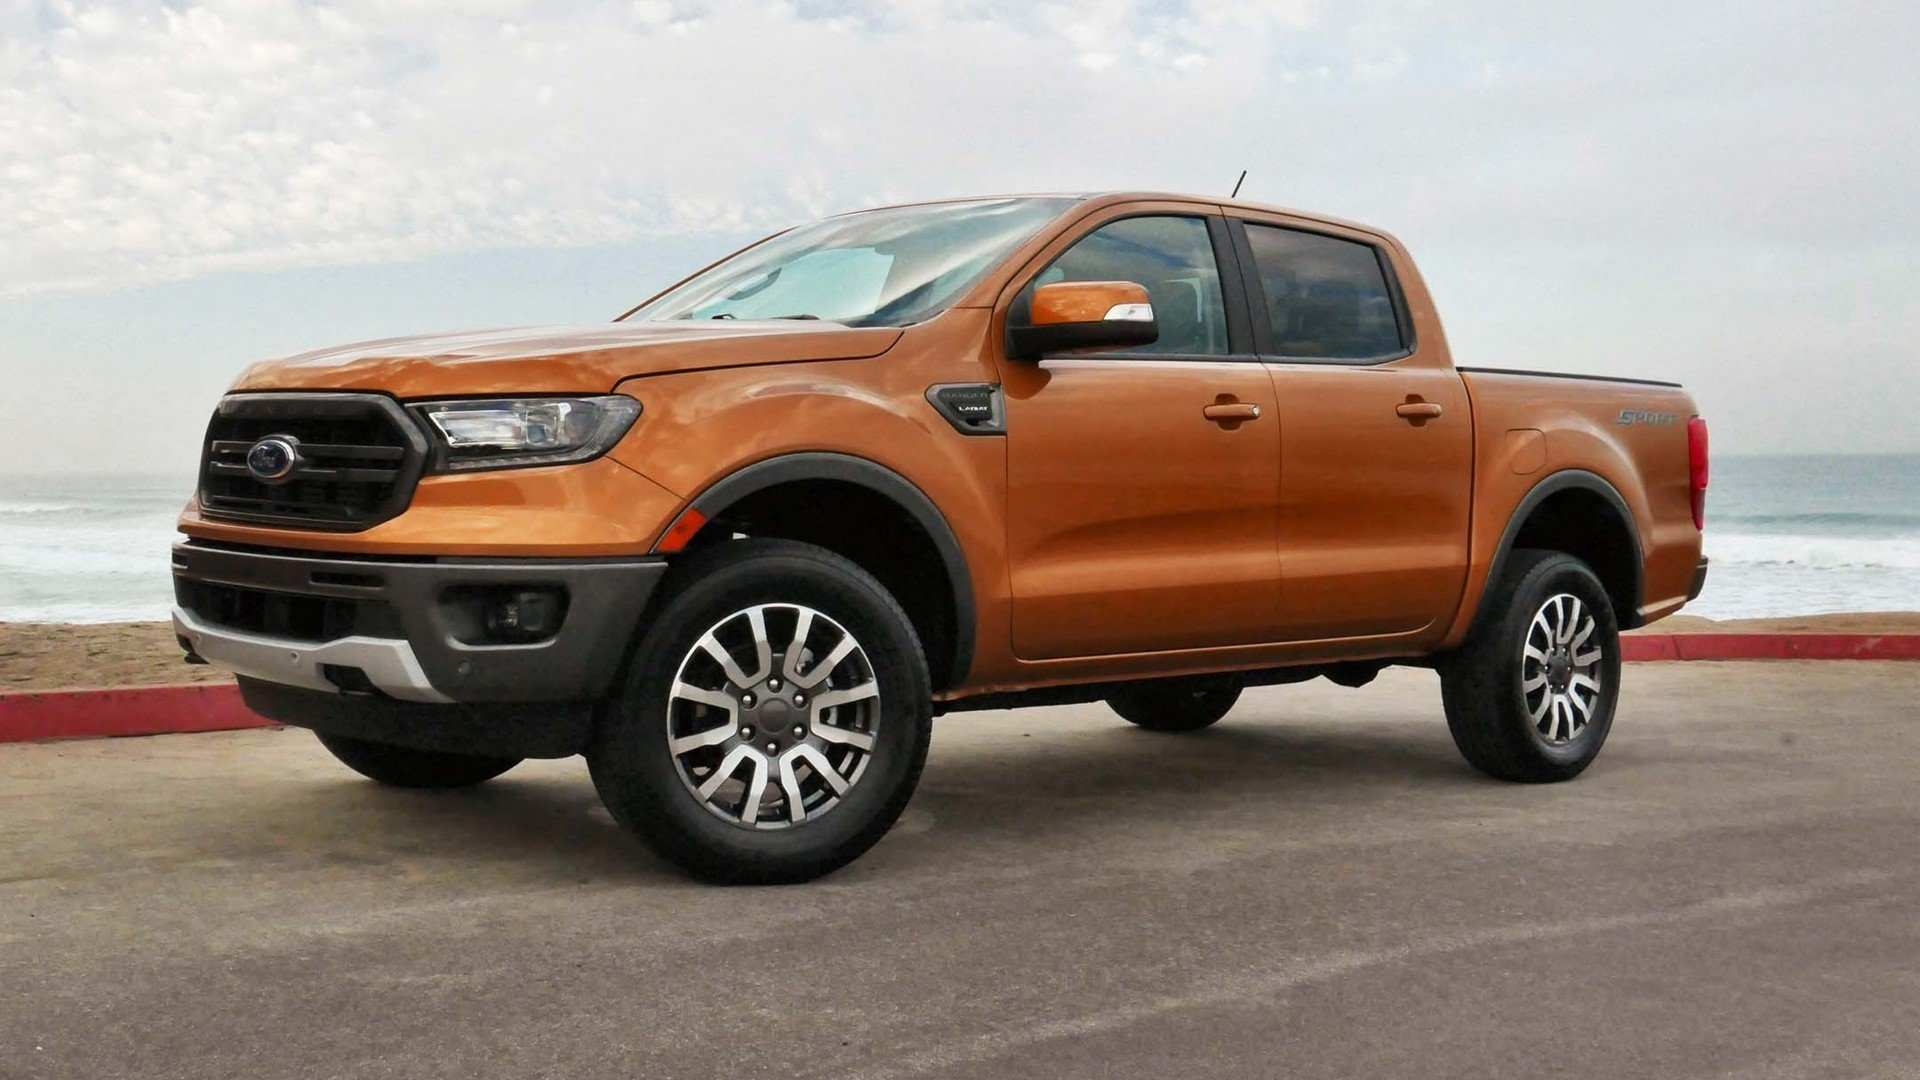 63 All New 2019 Ford Ranger Vs Bmw Canyon Pricing with 2019 Ford Ranger Vs Bmw Canyon